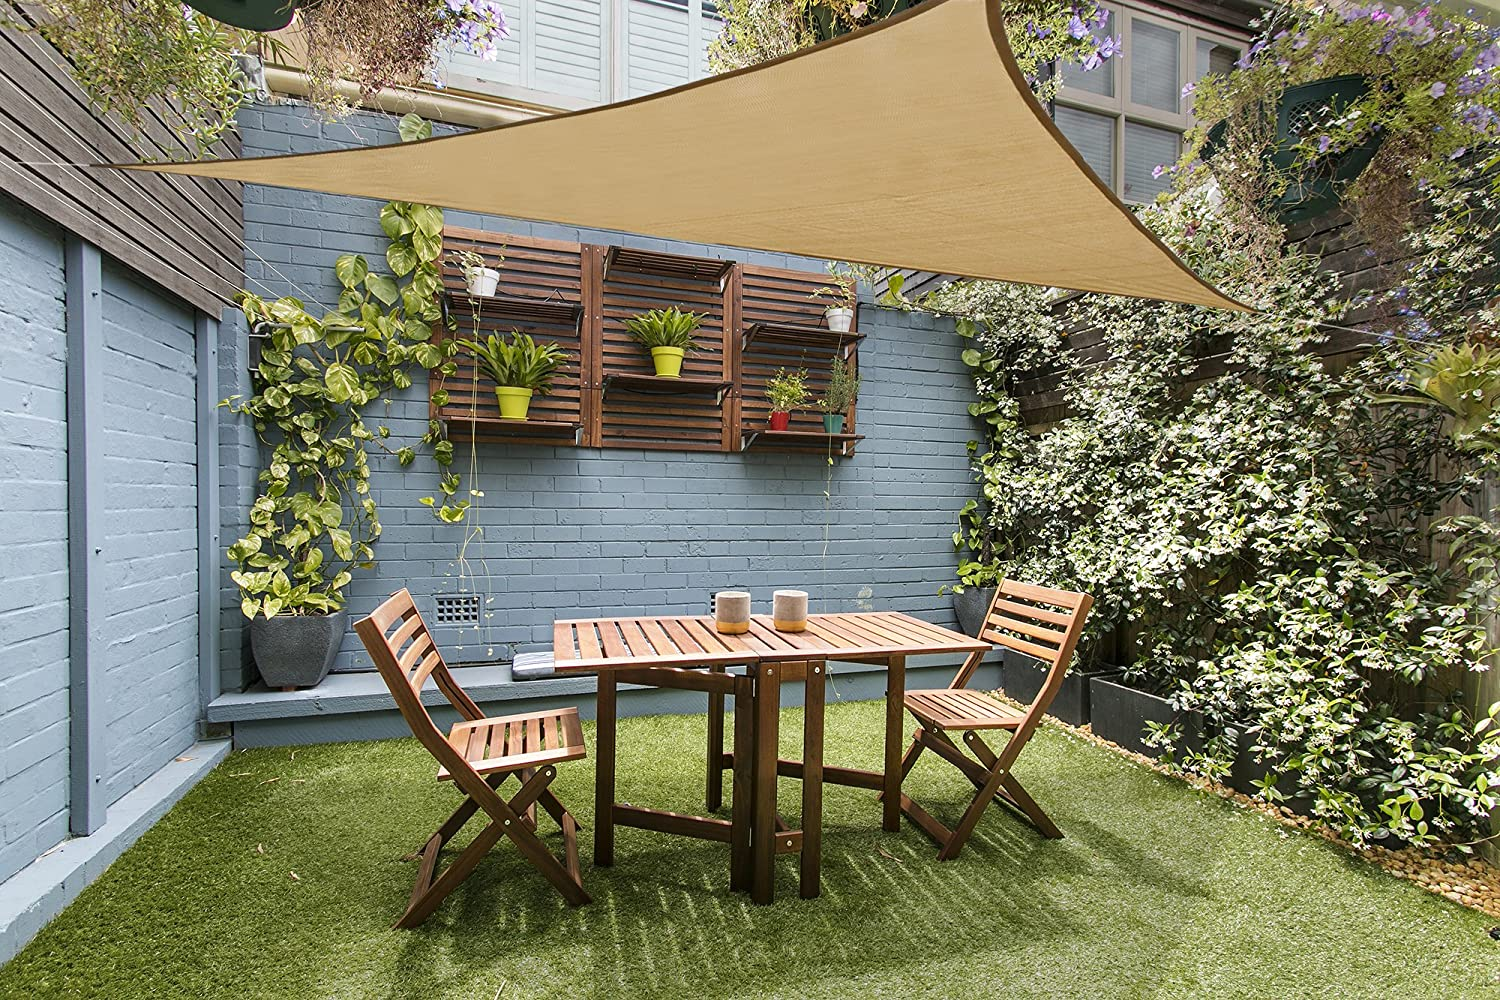 Love Story 12 x 12 x 12 Triangle Sand UV Block Sun Shade Sail Perfect for Outdoor Patio Garden